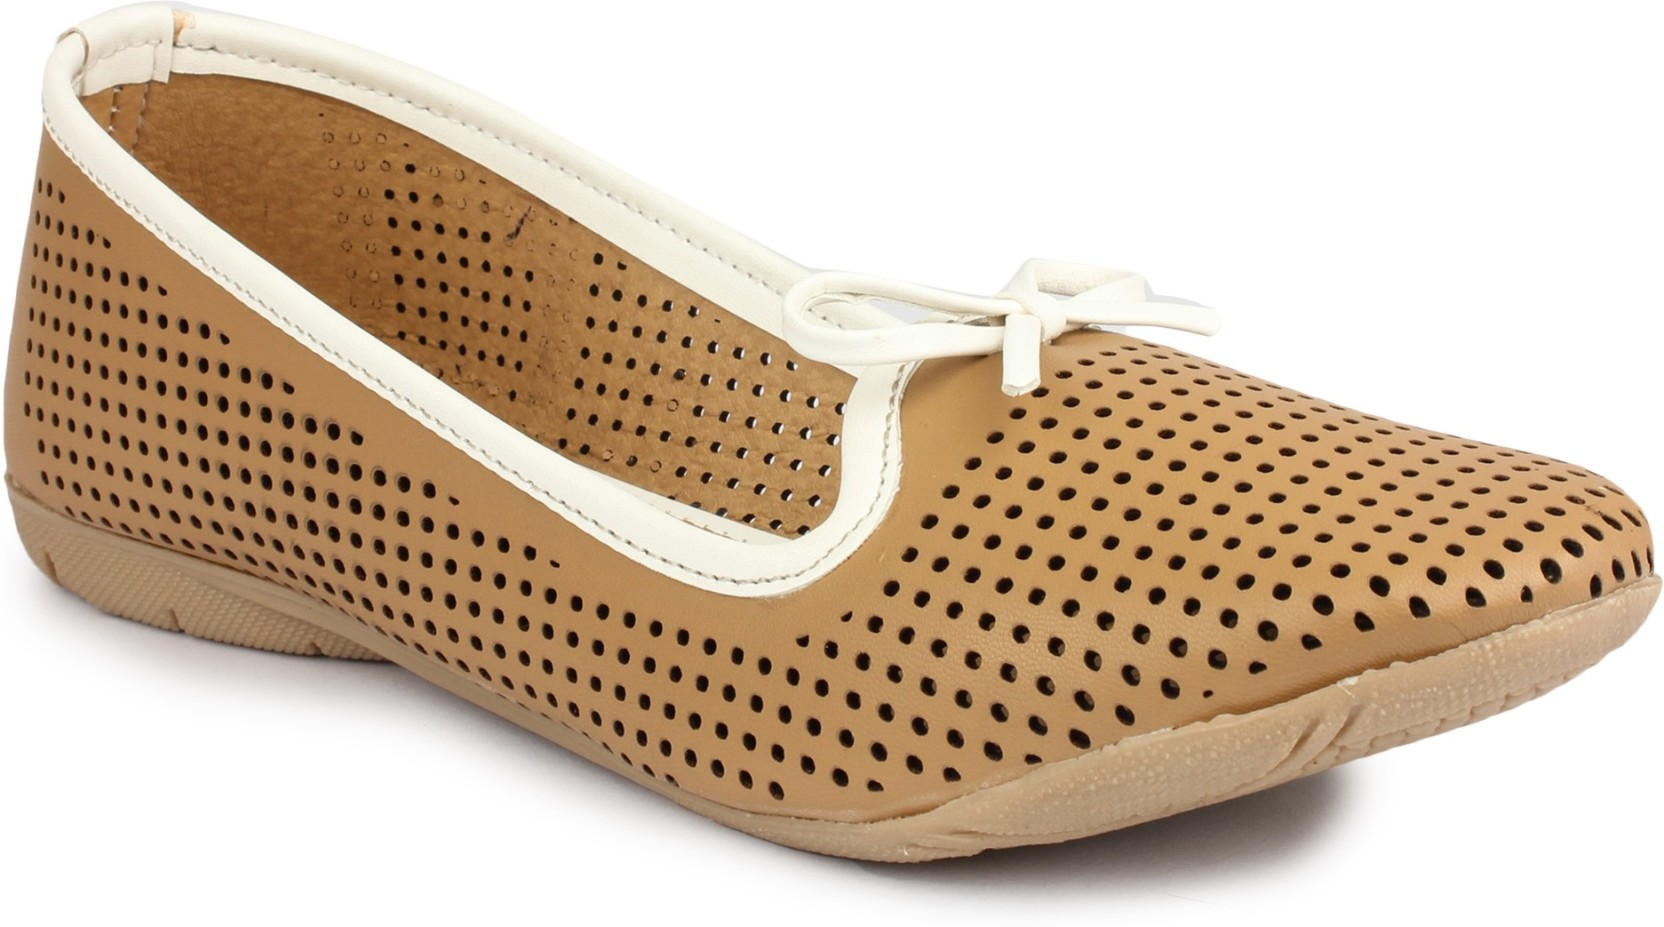 f01a0d2aca Regania Stylish Flat Cusion Casual Partywear Bellies Shoes Footwear For  Women and Girls (Brown / Cutwork) Casuals For Women